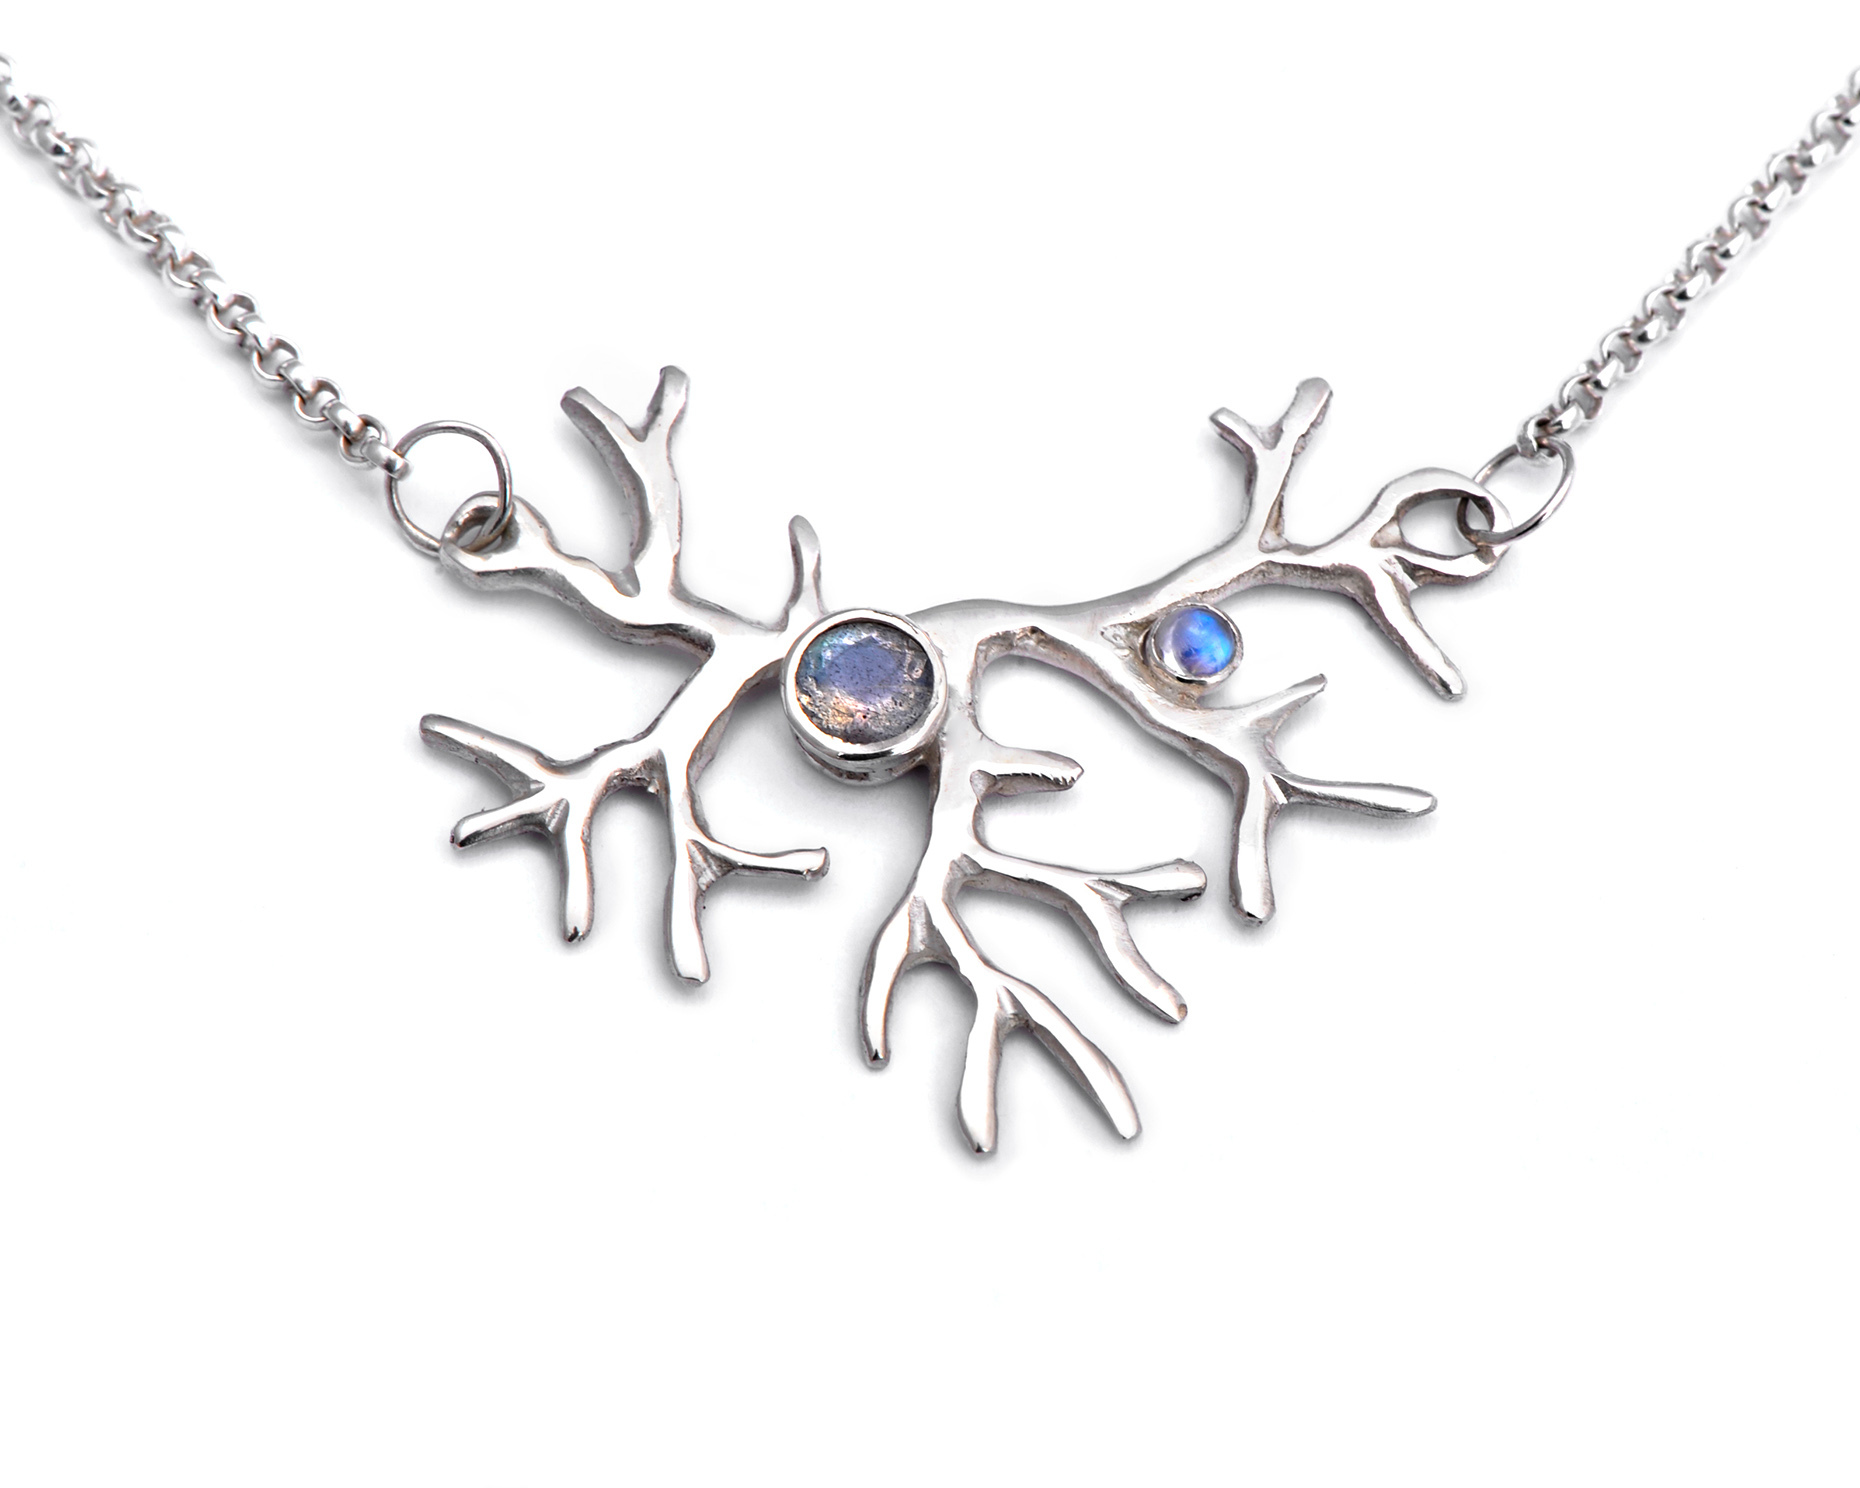 Neuron-Necklace-by-Peggy-Skemp_RHanelPhotography